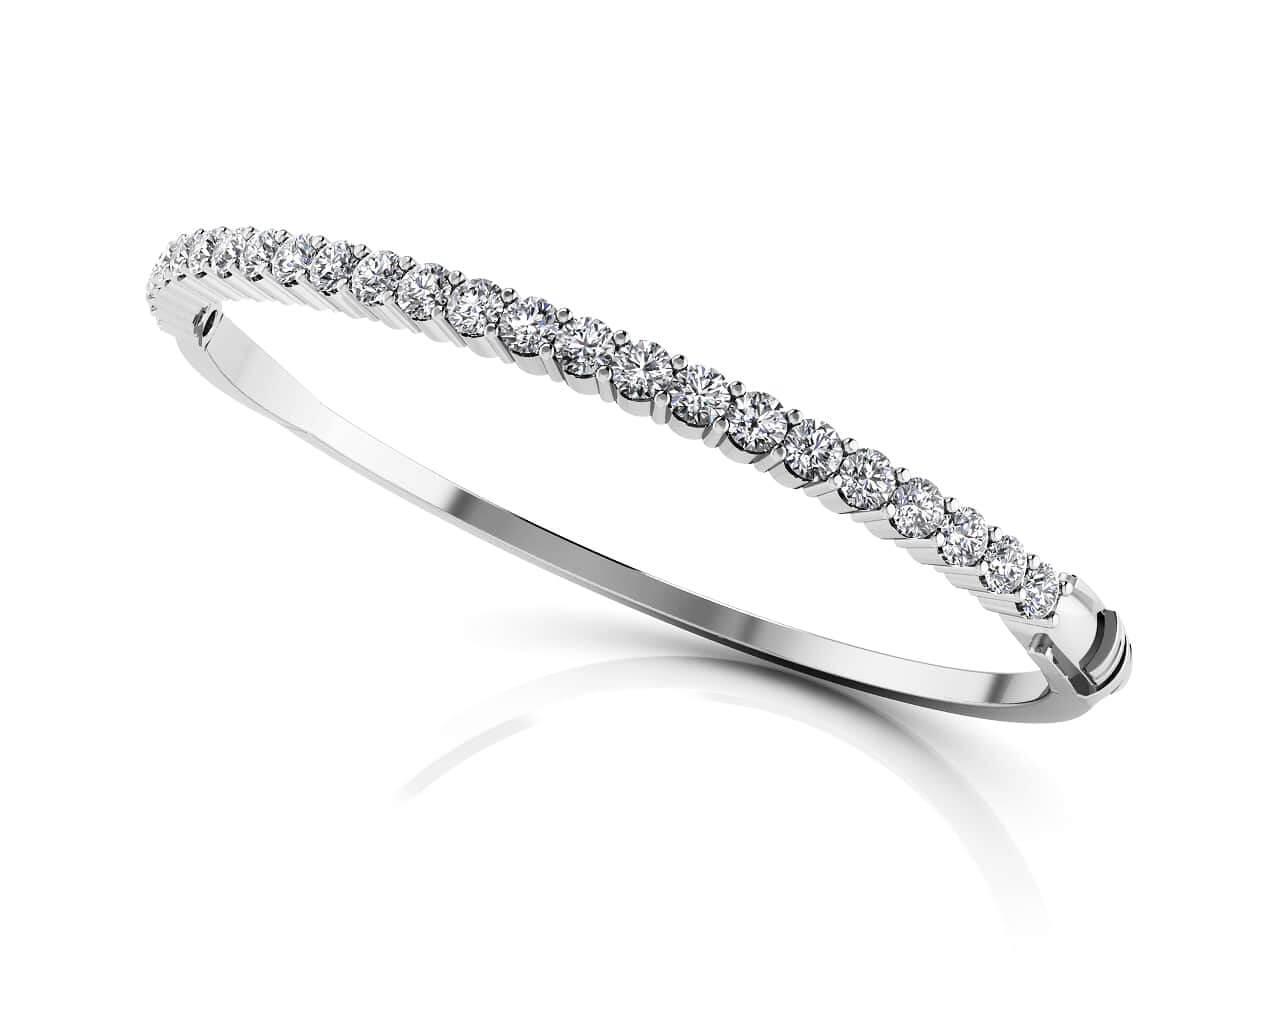 diamond bangles pave white solid gold bangle bracelets round bracelet